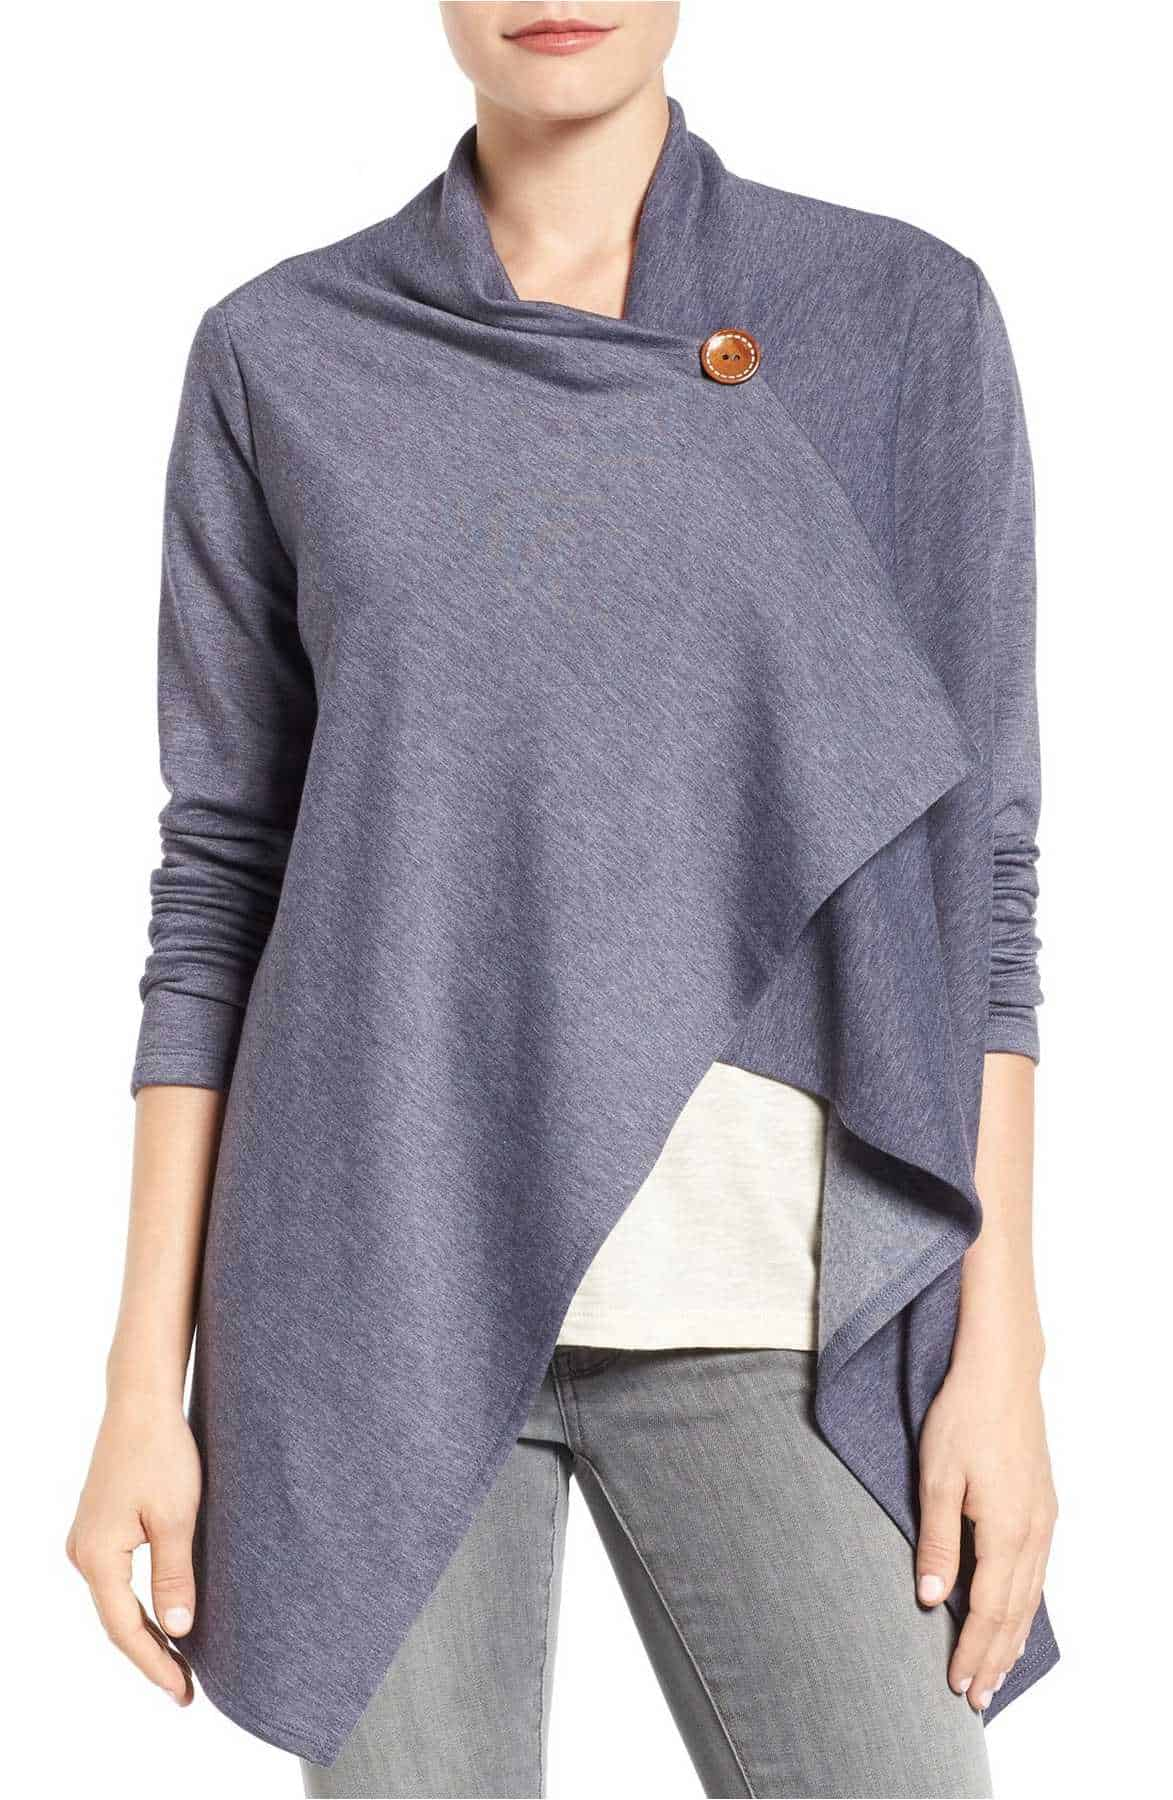 This one button fleece cardigan is the perfect gift for any woman!